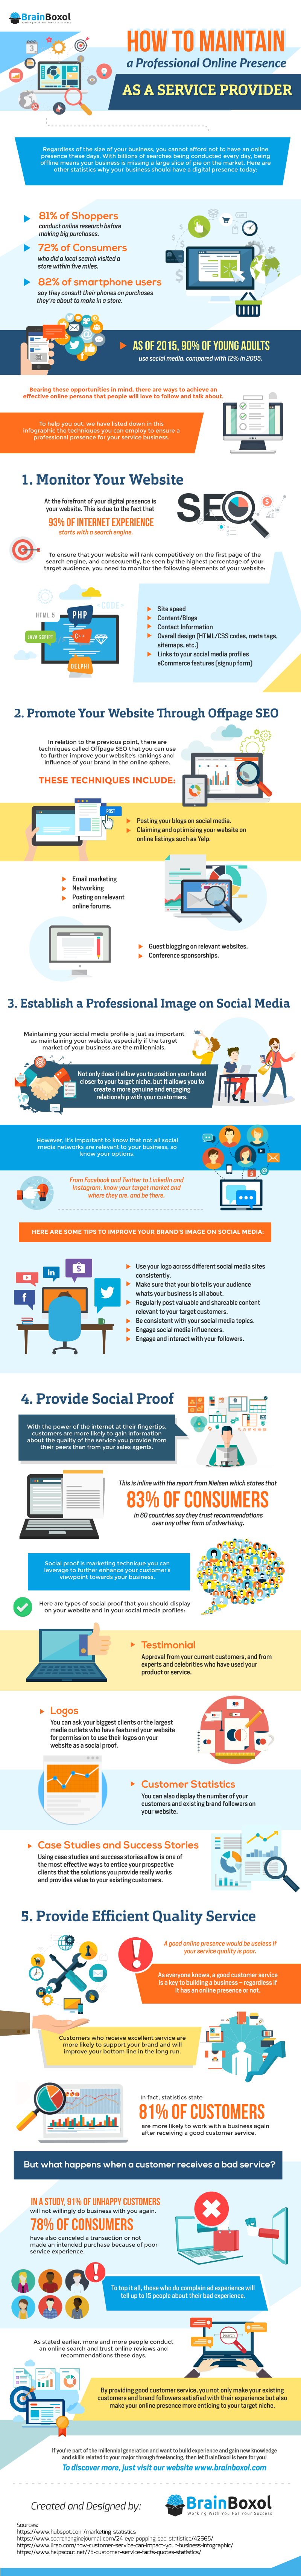 How to Maintain a Professional Online Presence as a Service Provider infographic_Having a strong and professional online presence is a crucial part of your marketing strategy. Check out BrainBoxol's infographic for how to maintain yours!